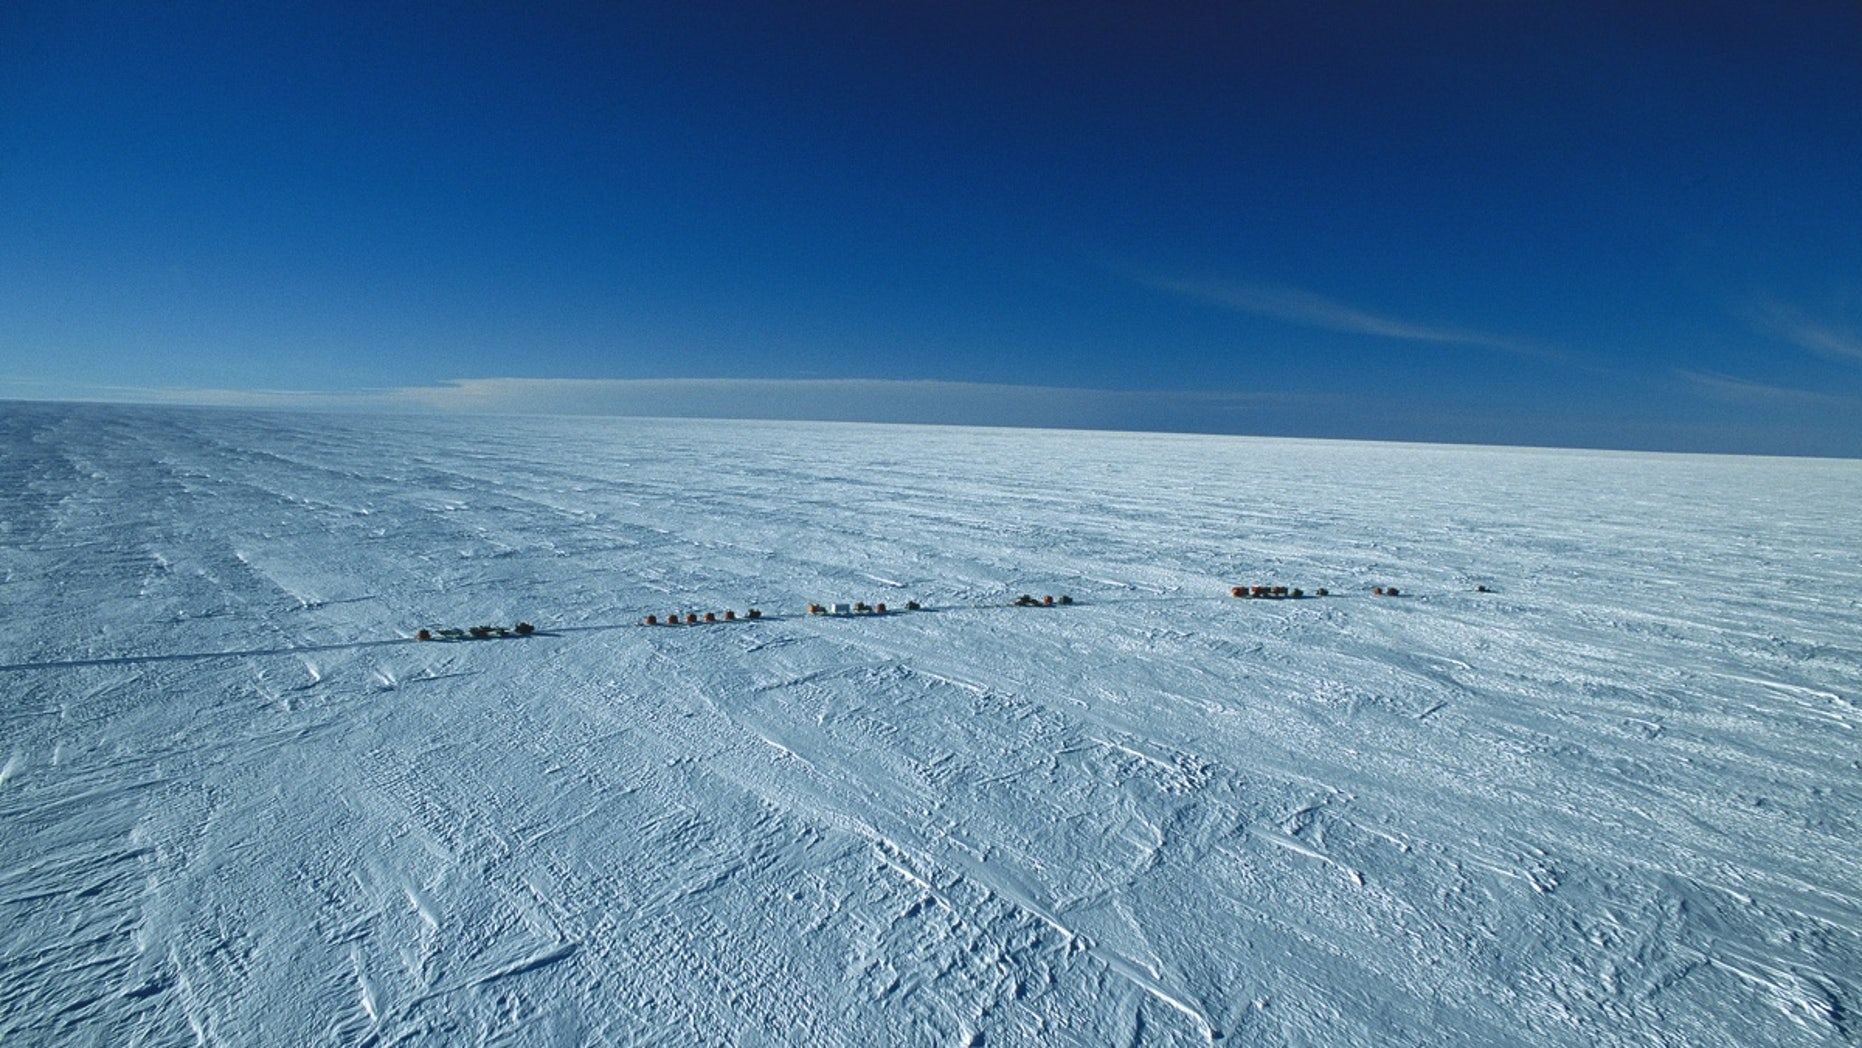 Westlake Legal Group antarctica-dome-c-NO-REUSE Oldest ice on Earth may be hiding 1.5 miles beneath Antarctica Megan Gannon, Live Science Contributor LiveScience fox-news/science/planet-earth/oceans fnc/science fnc ec195ca0-c5a3-5b6a-b113-2b5c8b82fb66 article